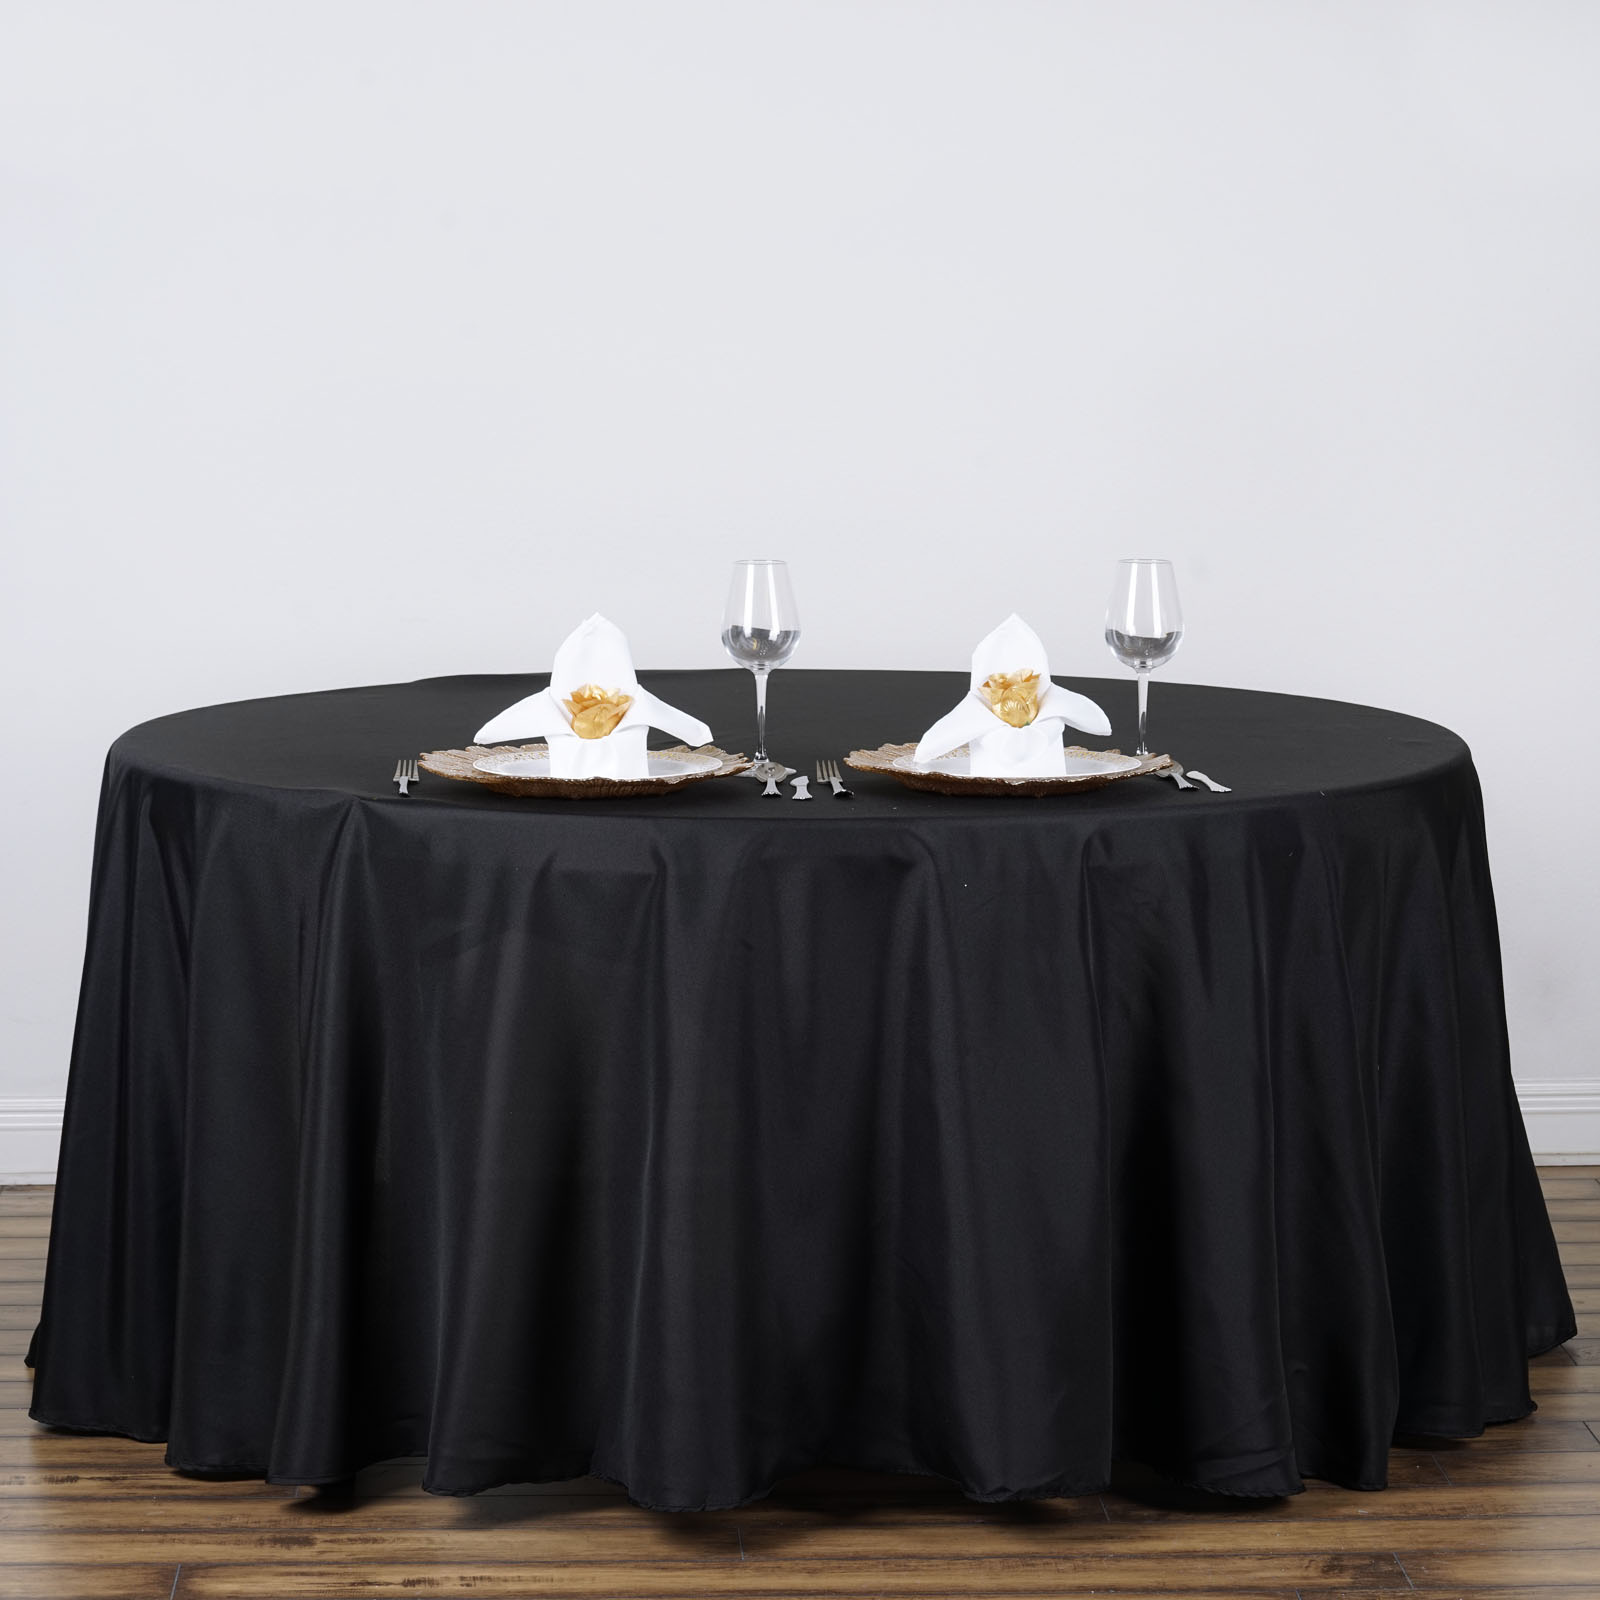 15 pcs Wholesale Lot 120quot ROUND POLYESTER TABLECLOTHS Fine  : tab120blk01 from www.ebay.com size 1600 x 1600 jpeg 176kB